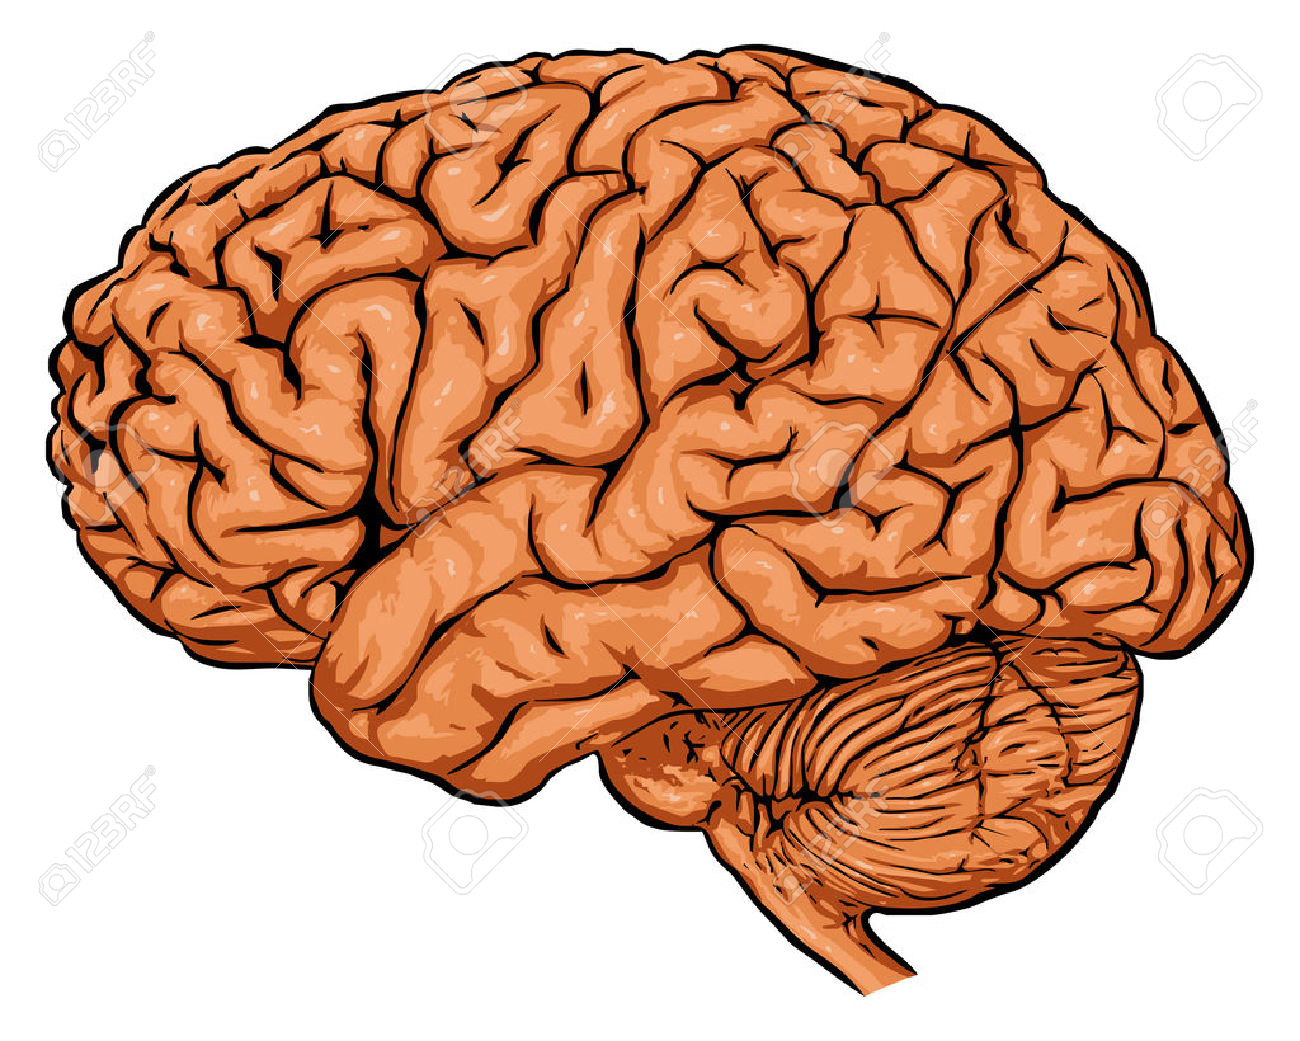 Neurologist Brain Clip Art.